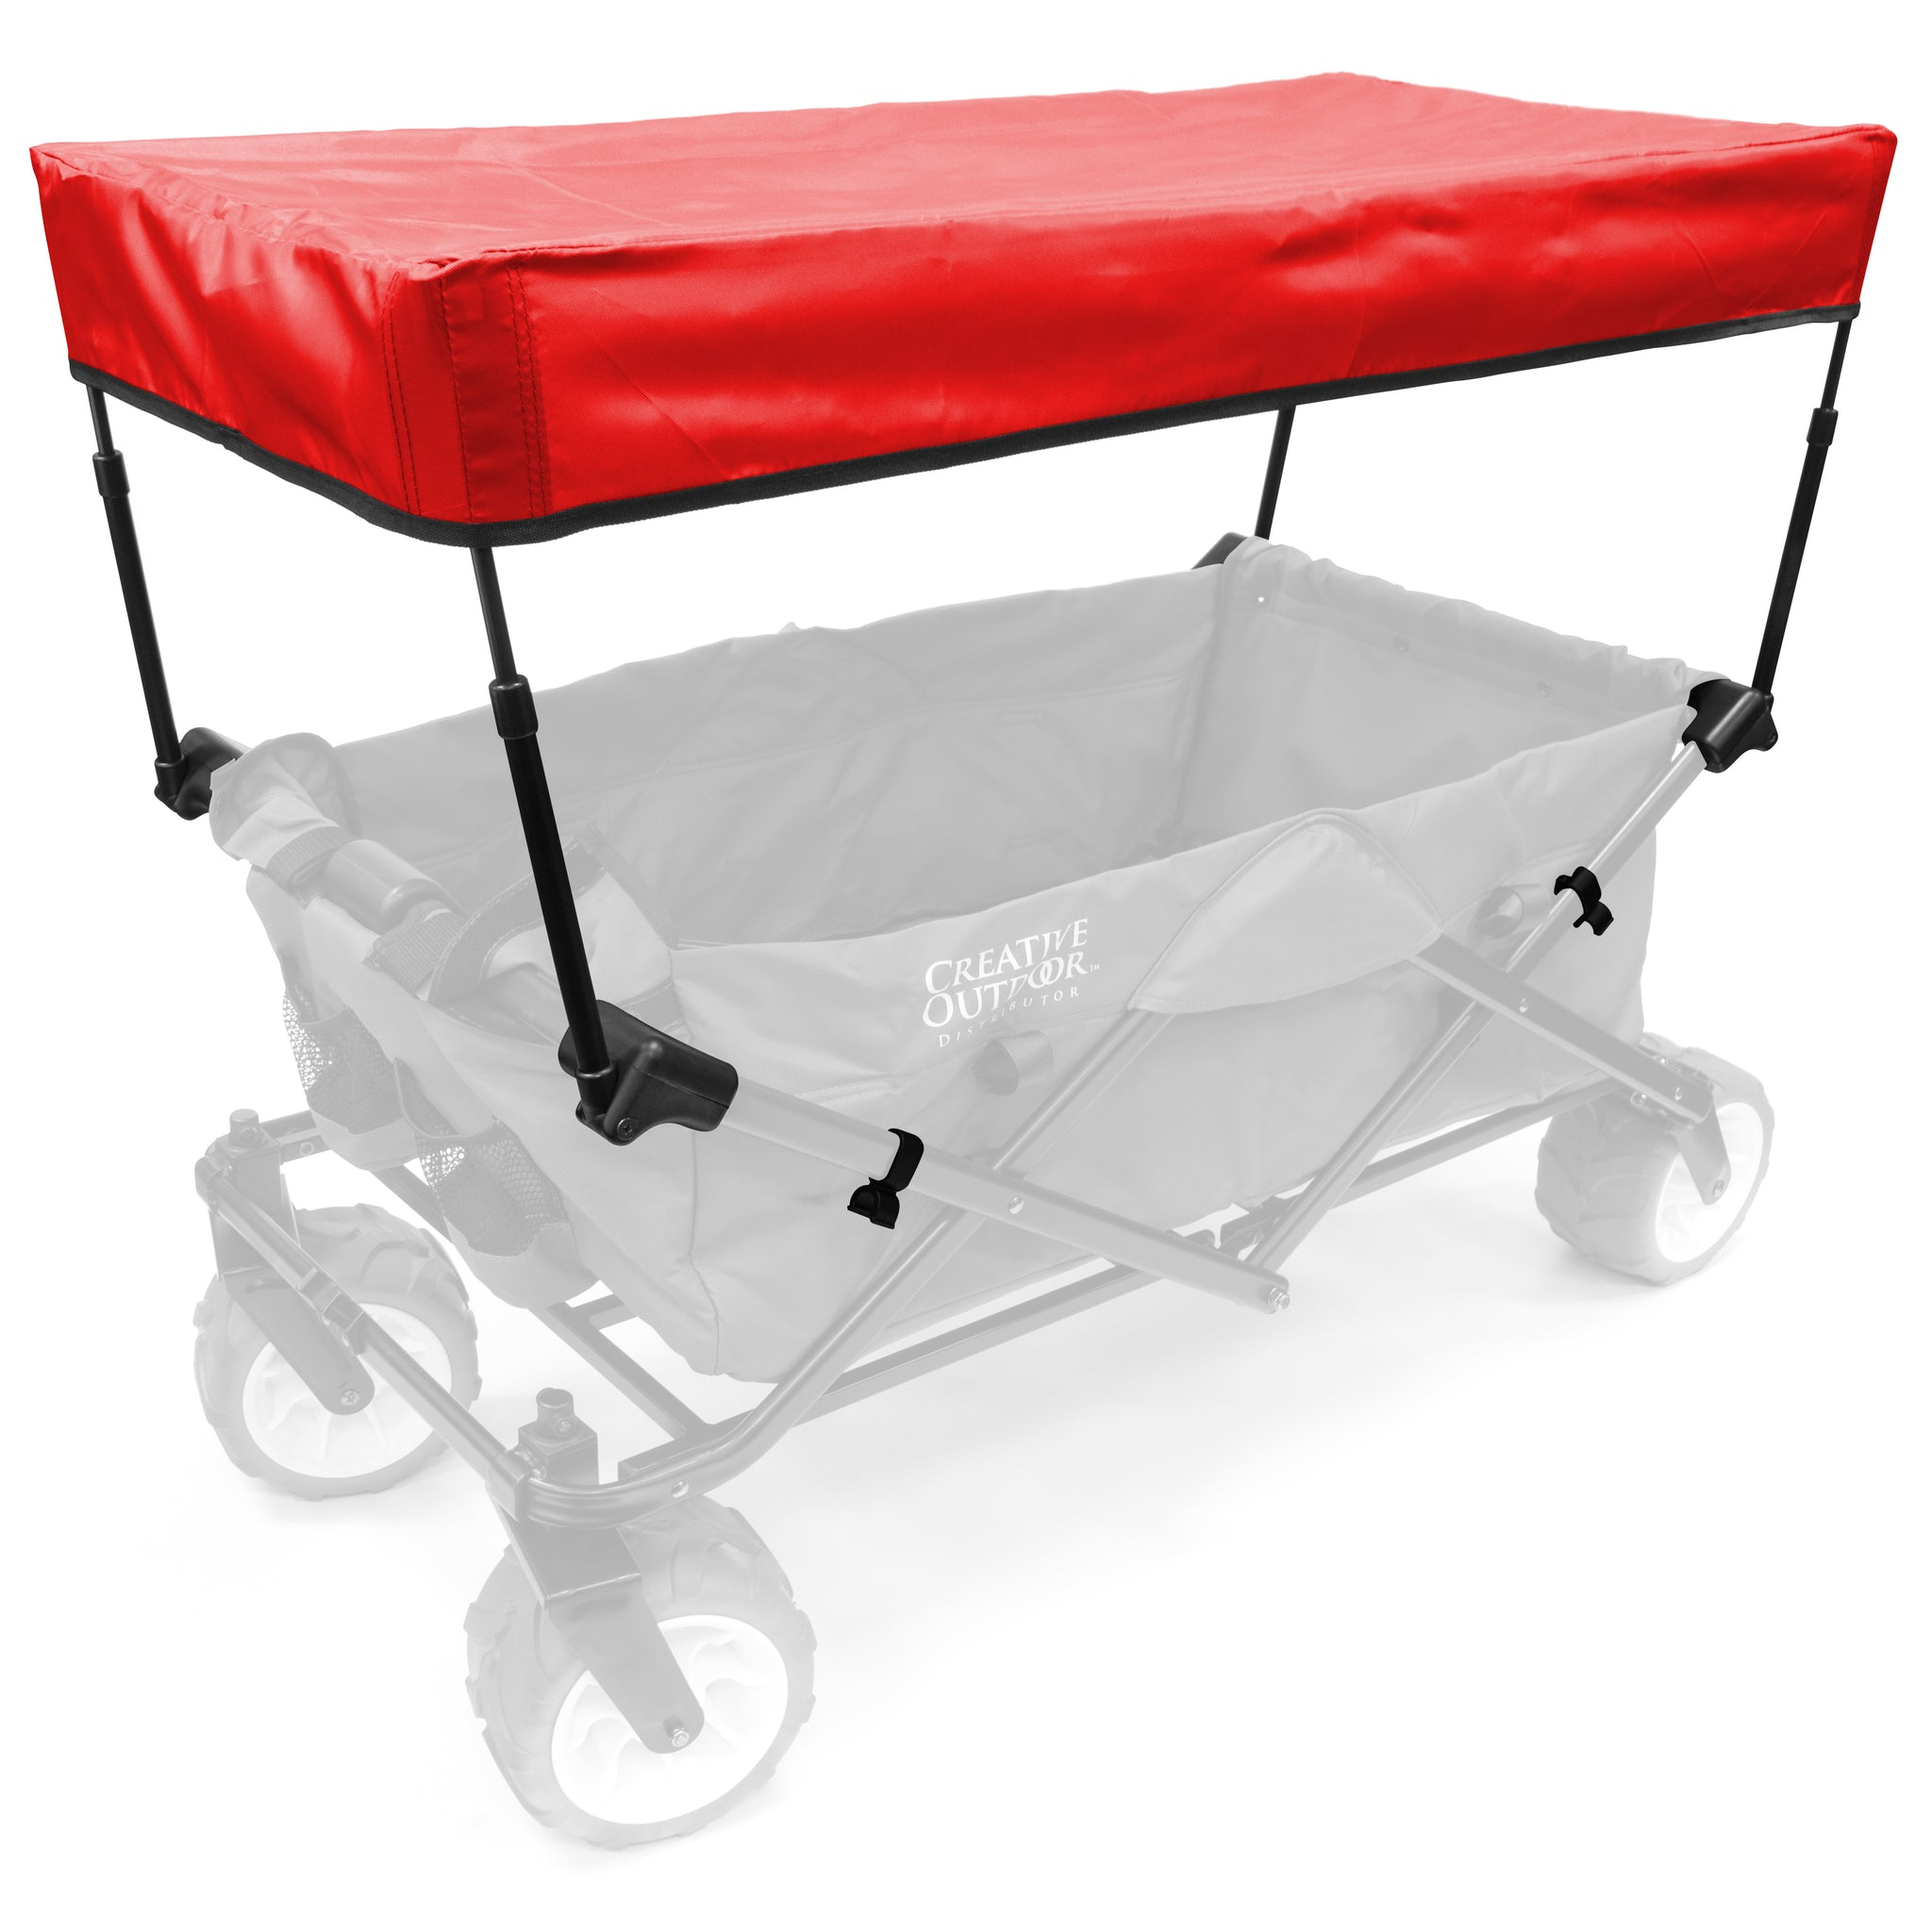 All-Terrain Folding Wagon Add-On Canopy Kit